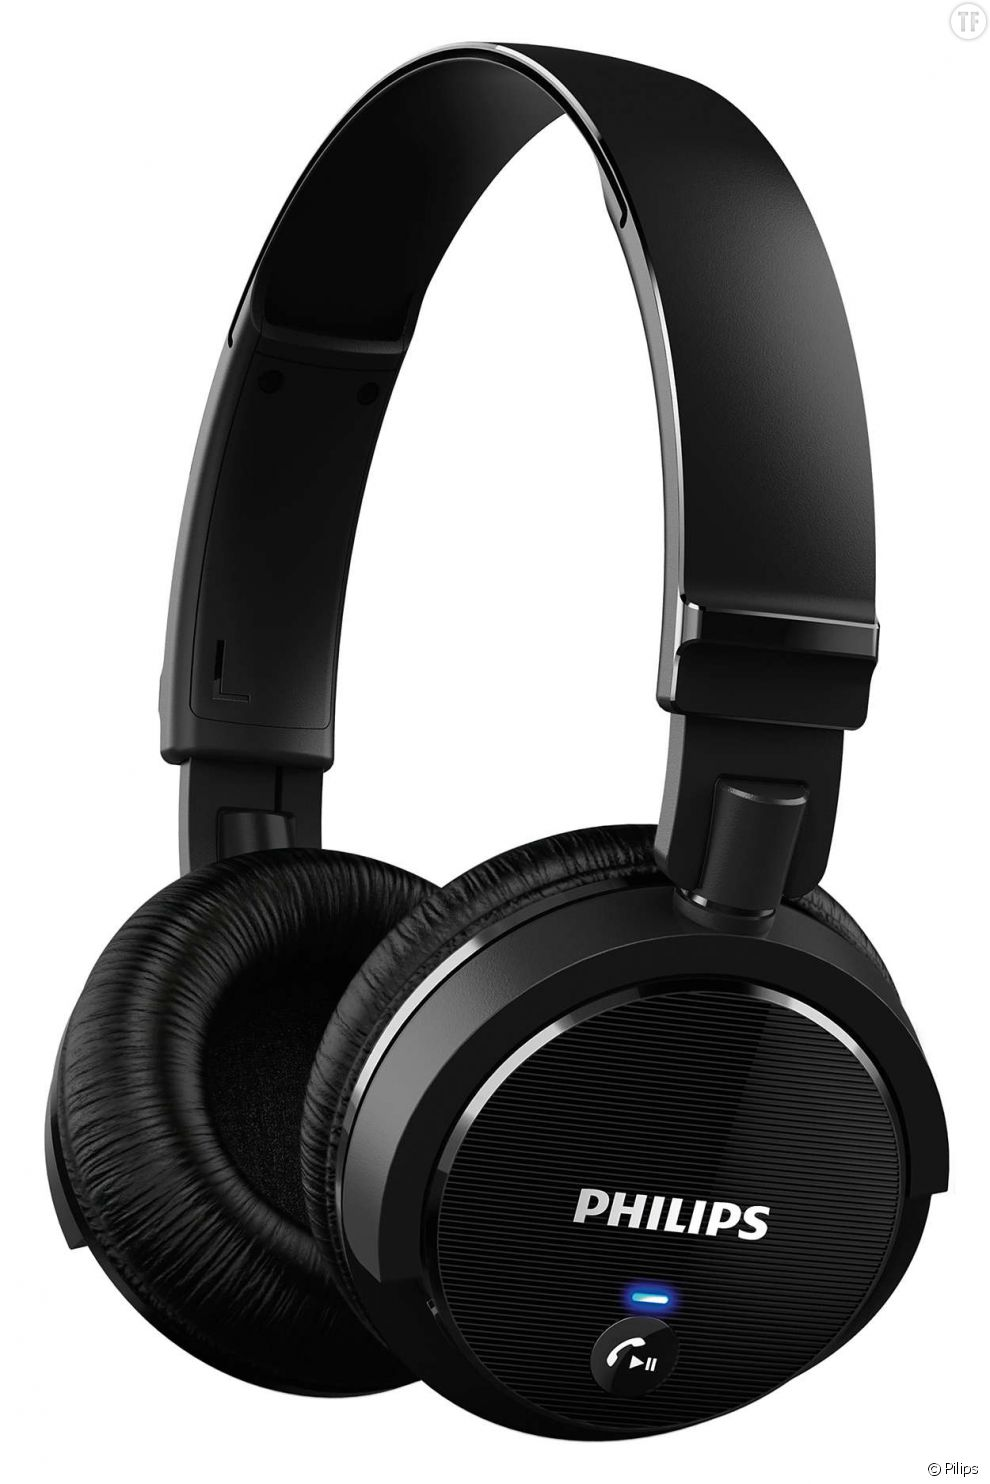 casque musique bluetooth philips 5600 noir. Black Bedroom Furniture Sets. Home Design Ideas